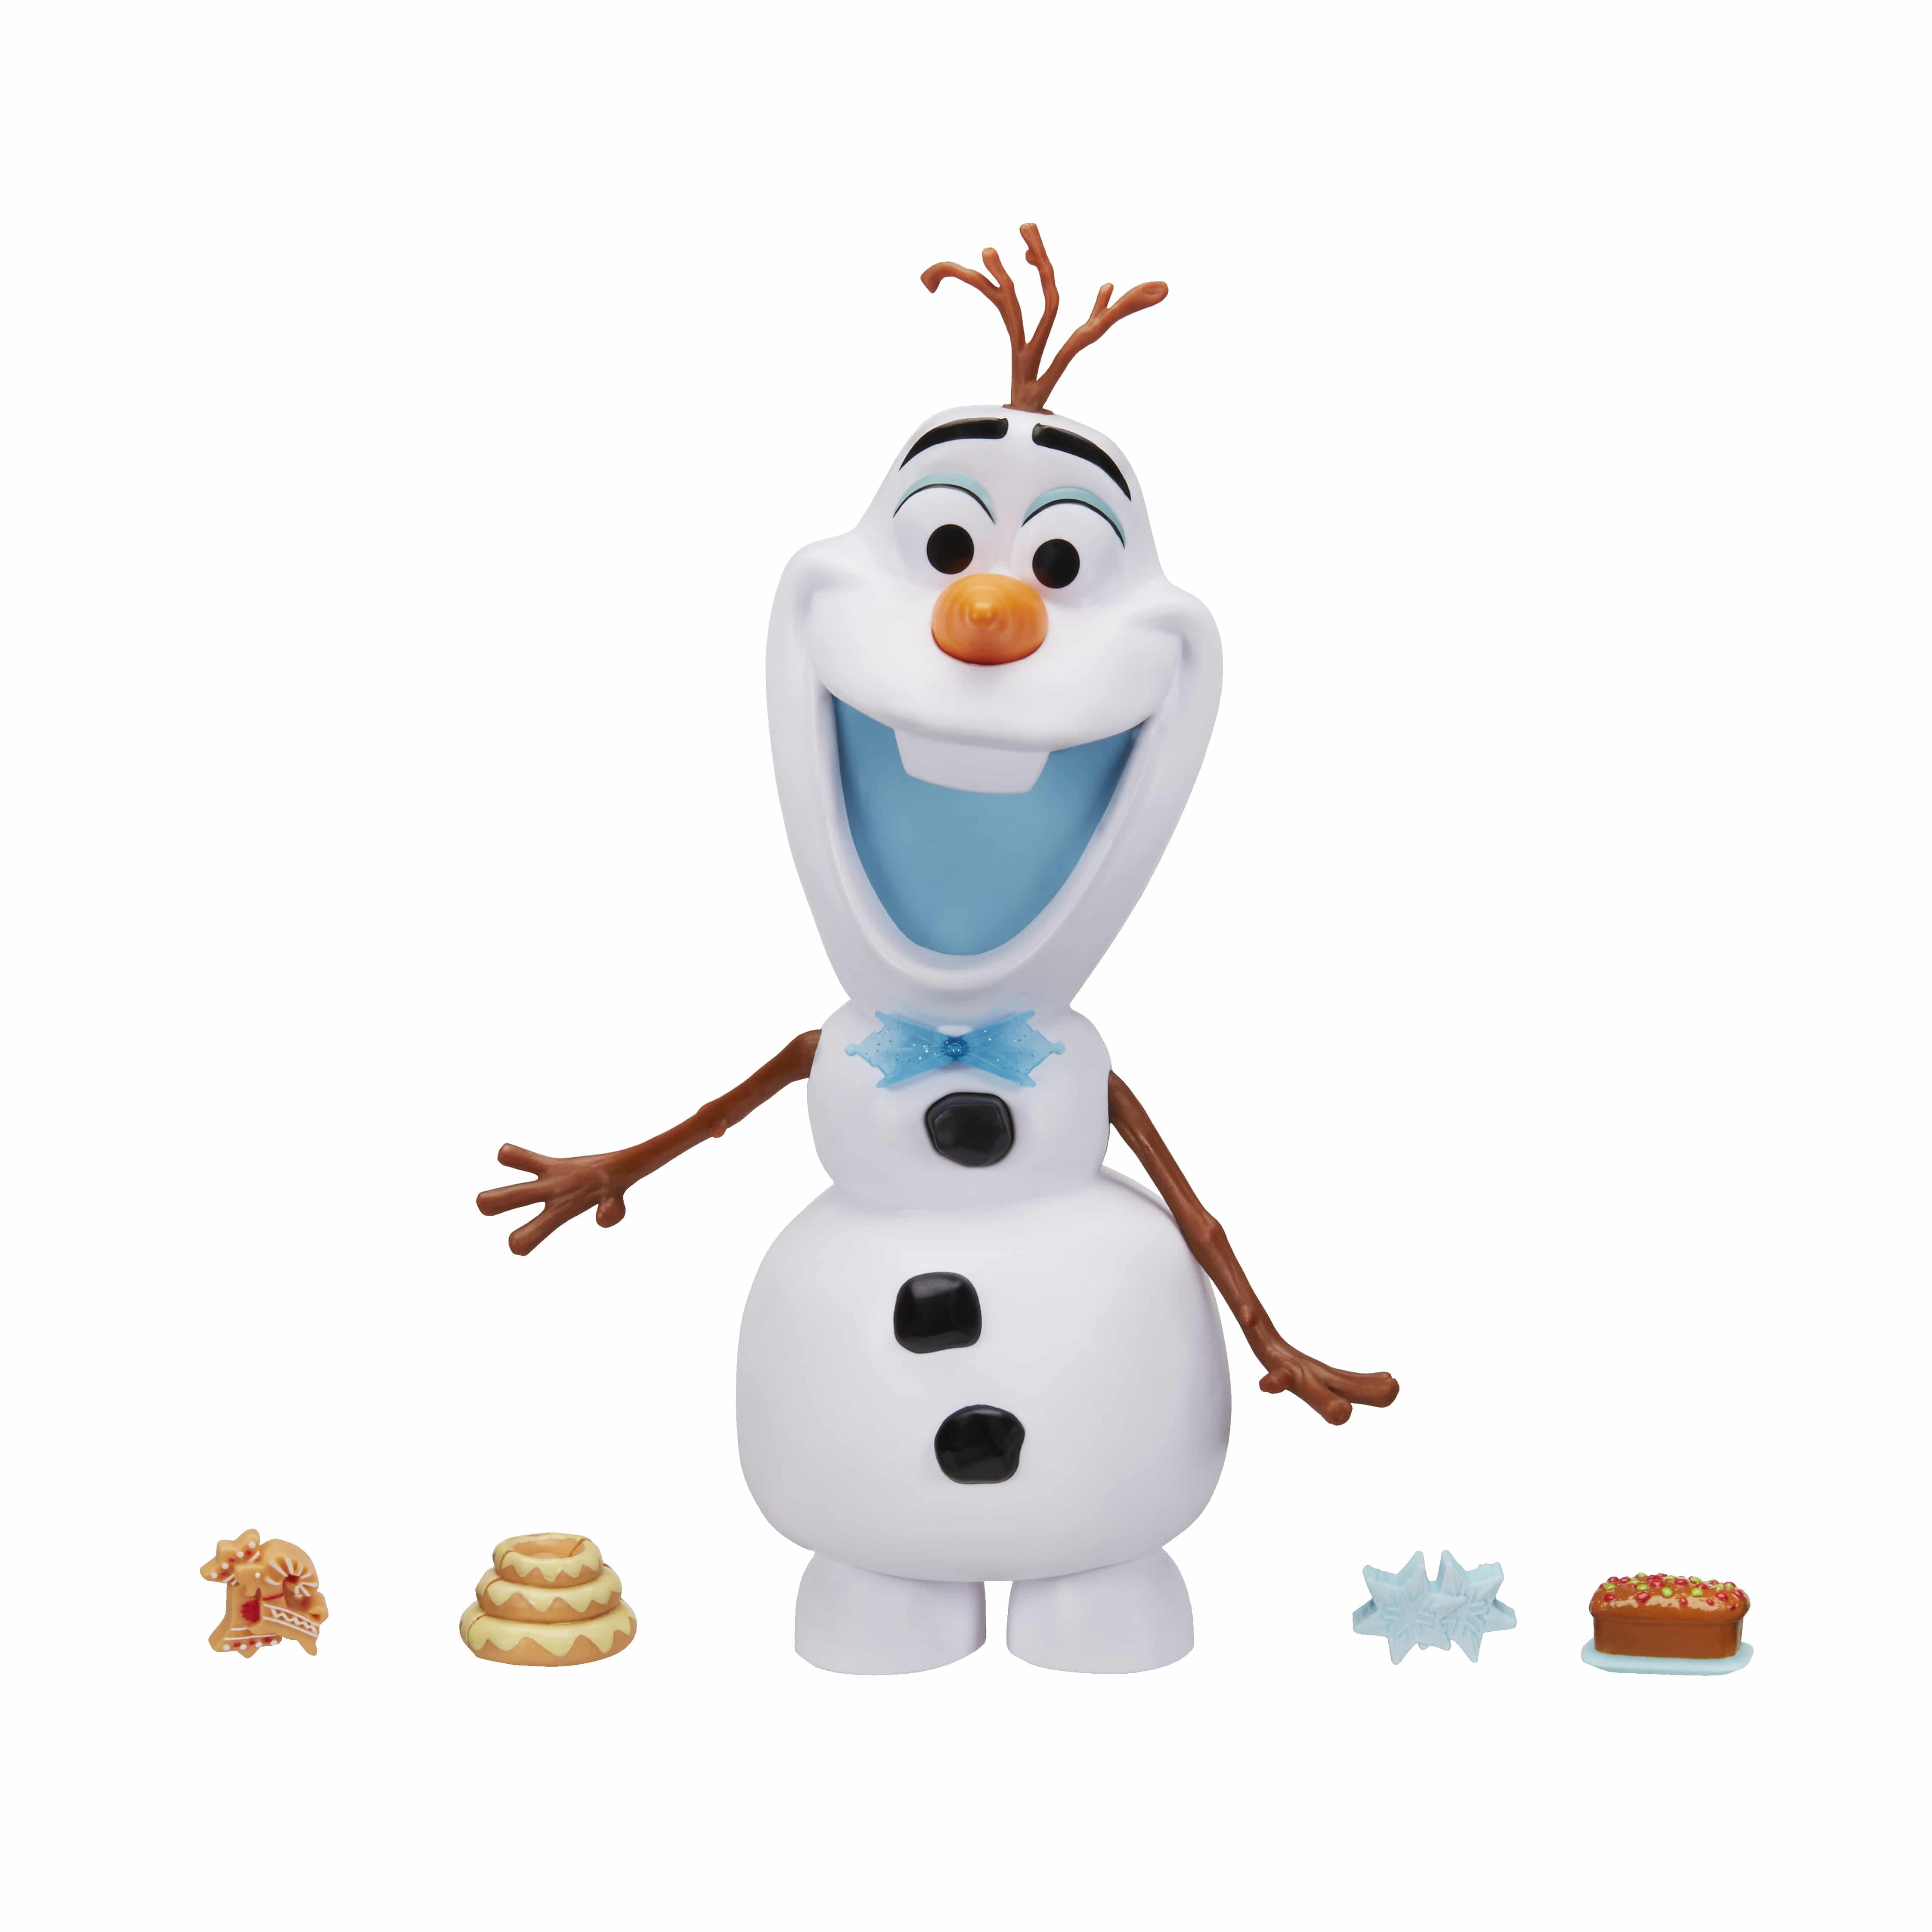 Snacktime Surprise Olaf Doll